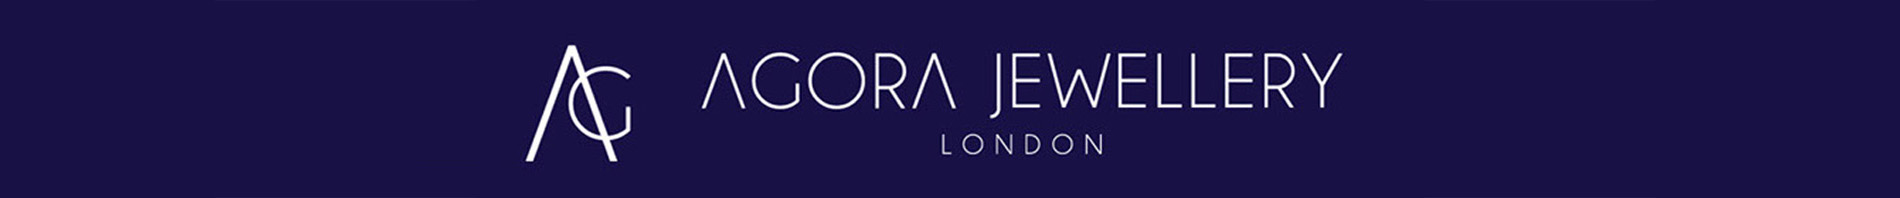 Agora Jewellery London logo